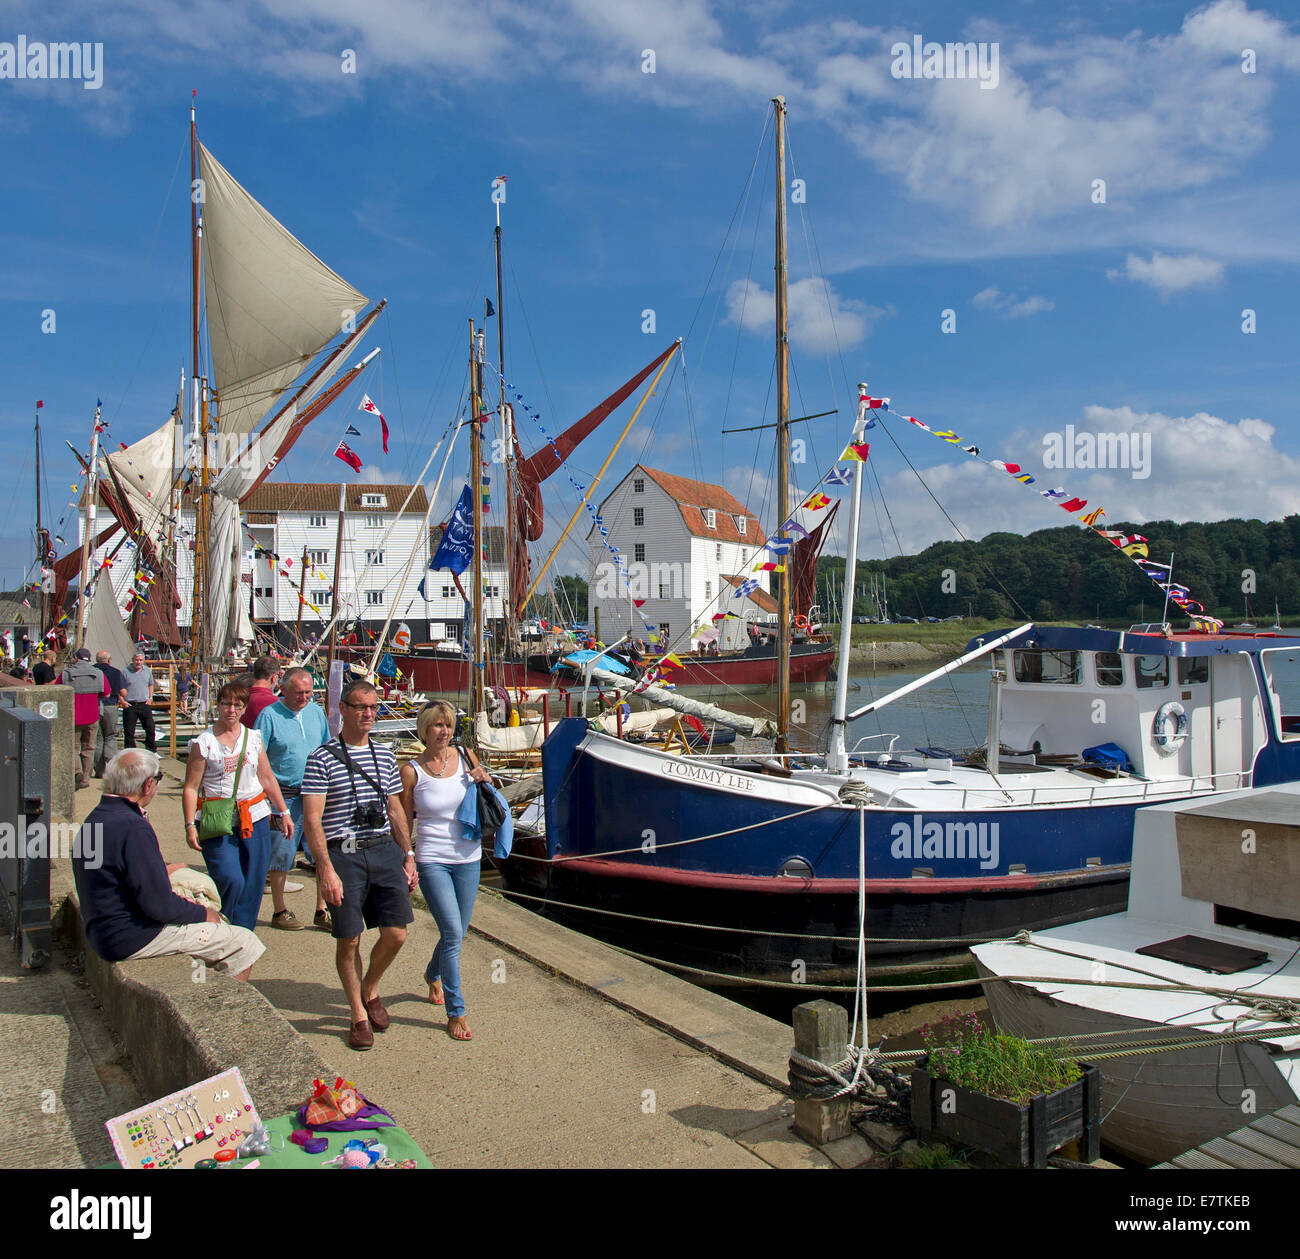 Visitors to the Woodbridge Waterfront festival towards the Tide Mill - Stock Image